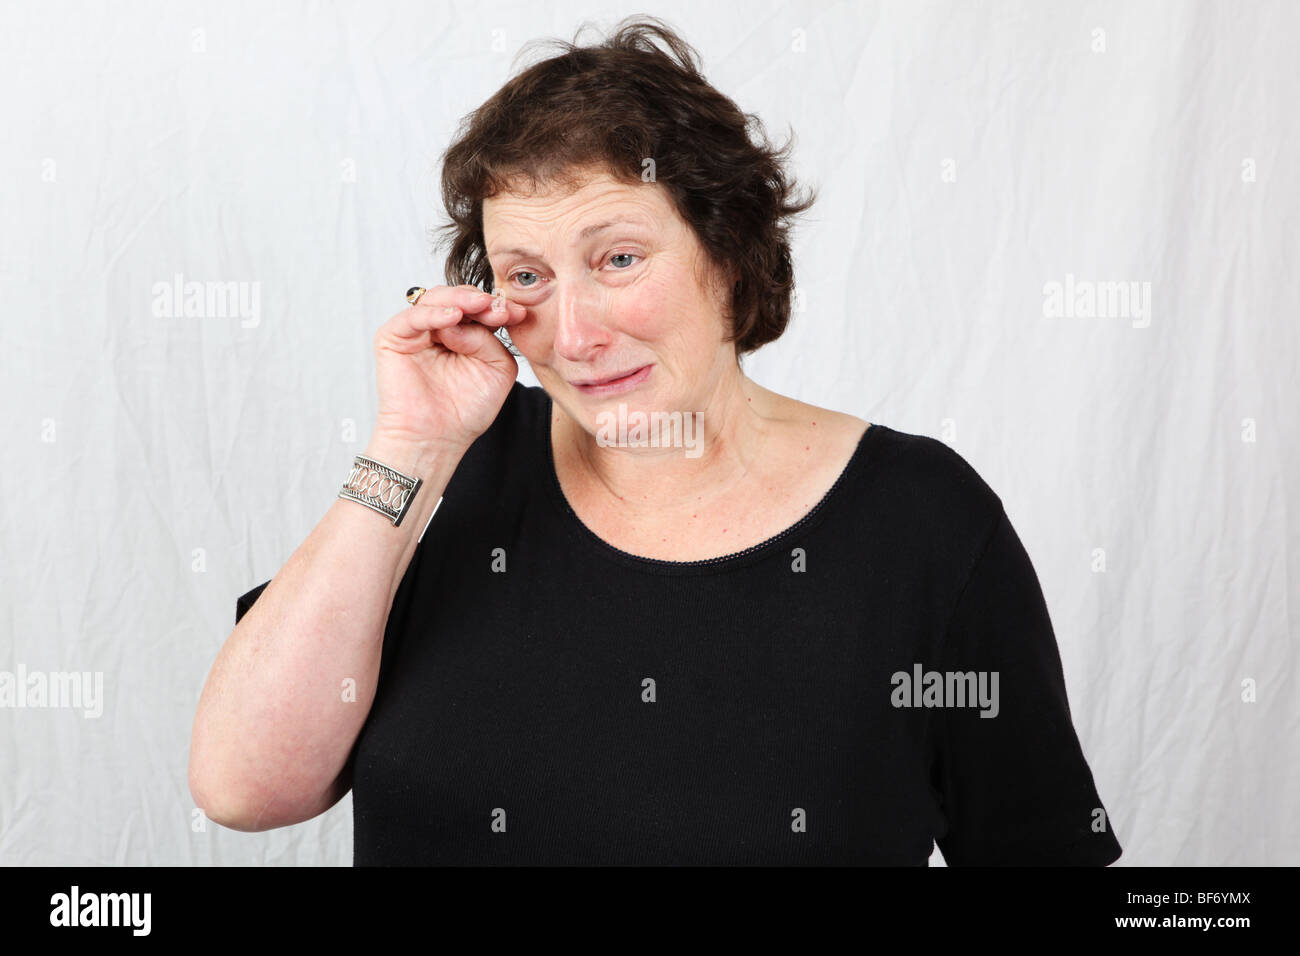 50s 60s late middle aged woman crying looking sad tearful upset depressed down distressed unsettled troubled worried - Stock Image